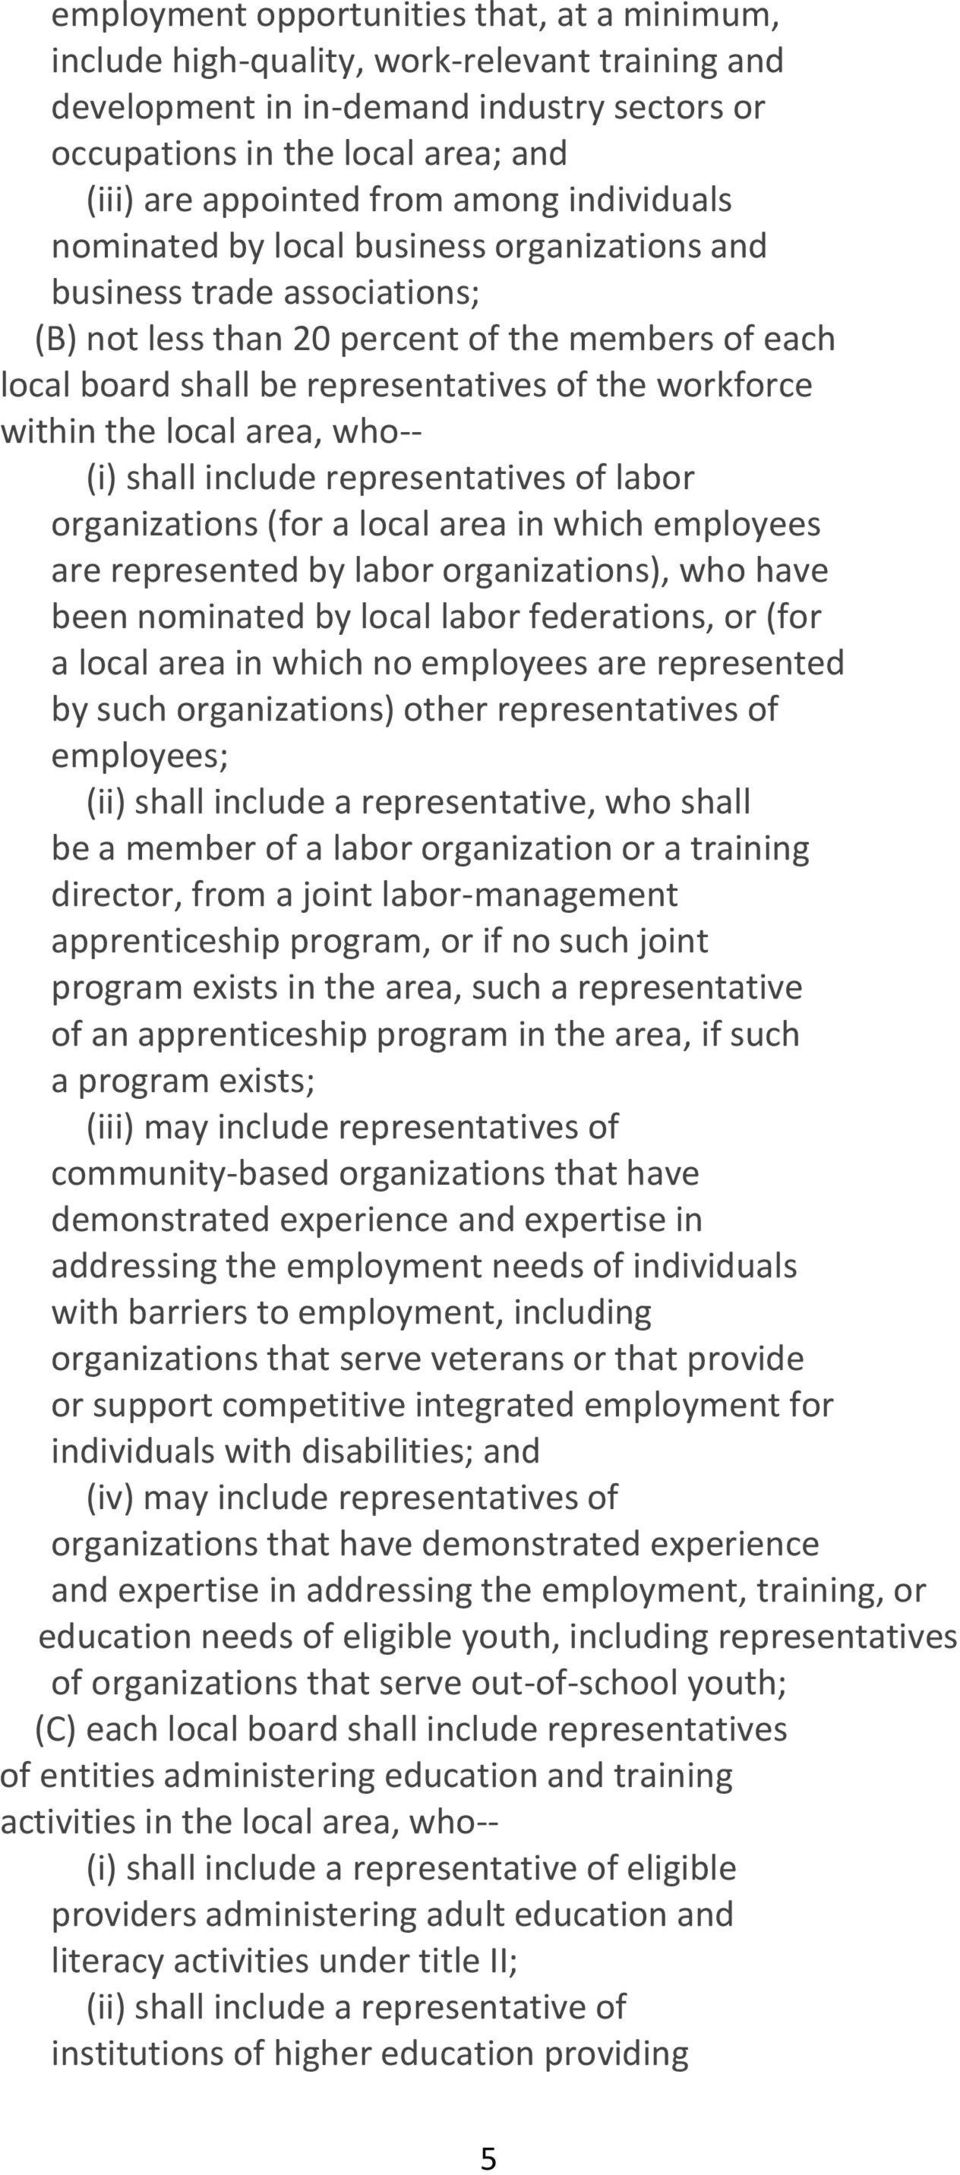 within the local area, who-- (i) shall include representatives of labor organizations (for a local area in which employees are represented by labor organizations), who have been nominated by local